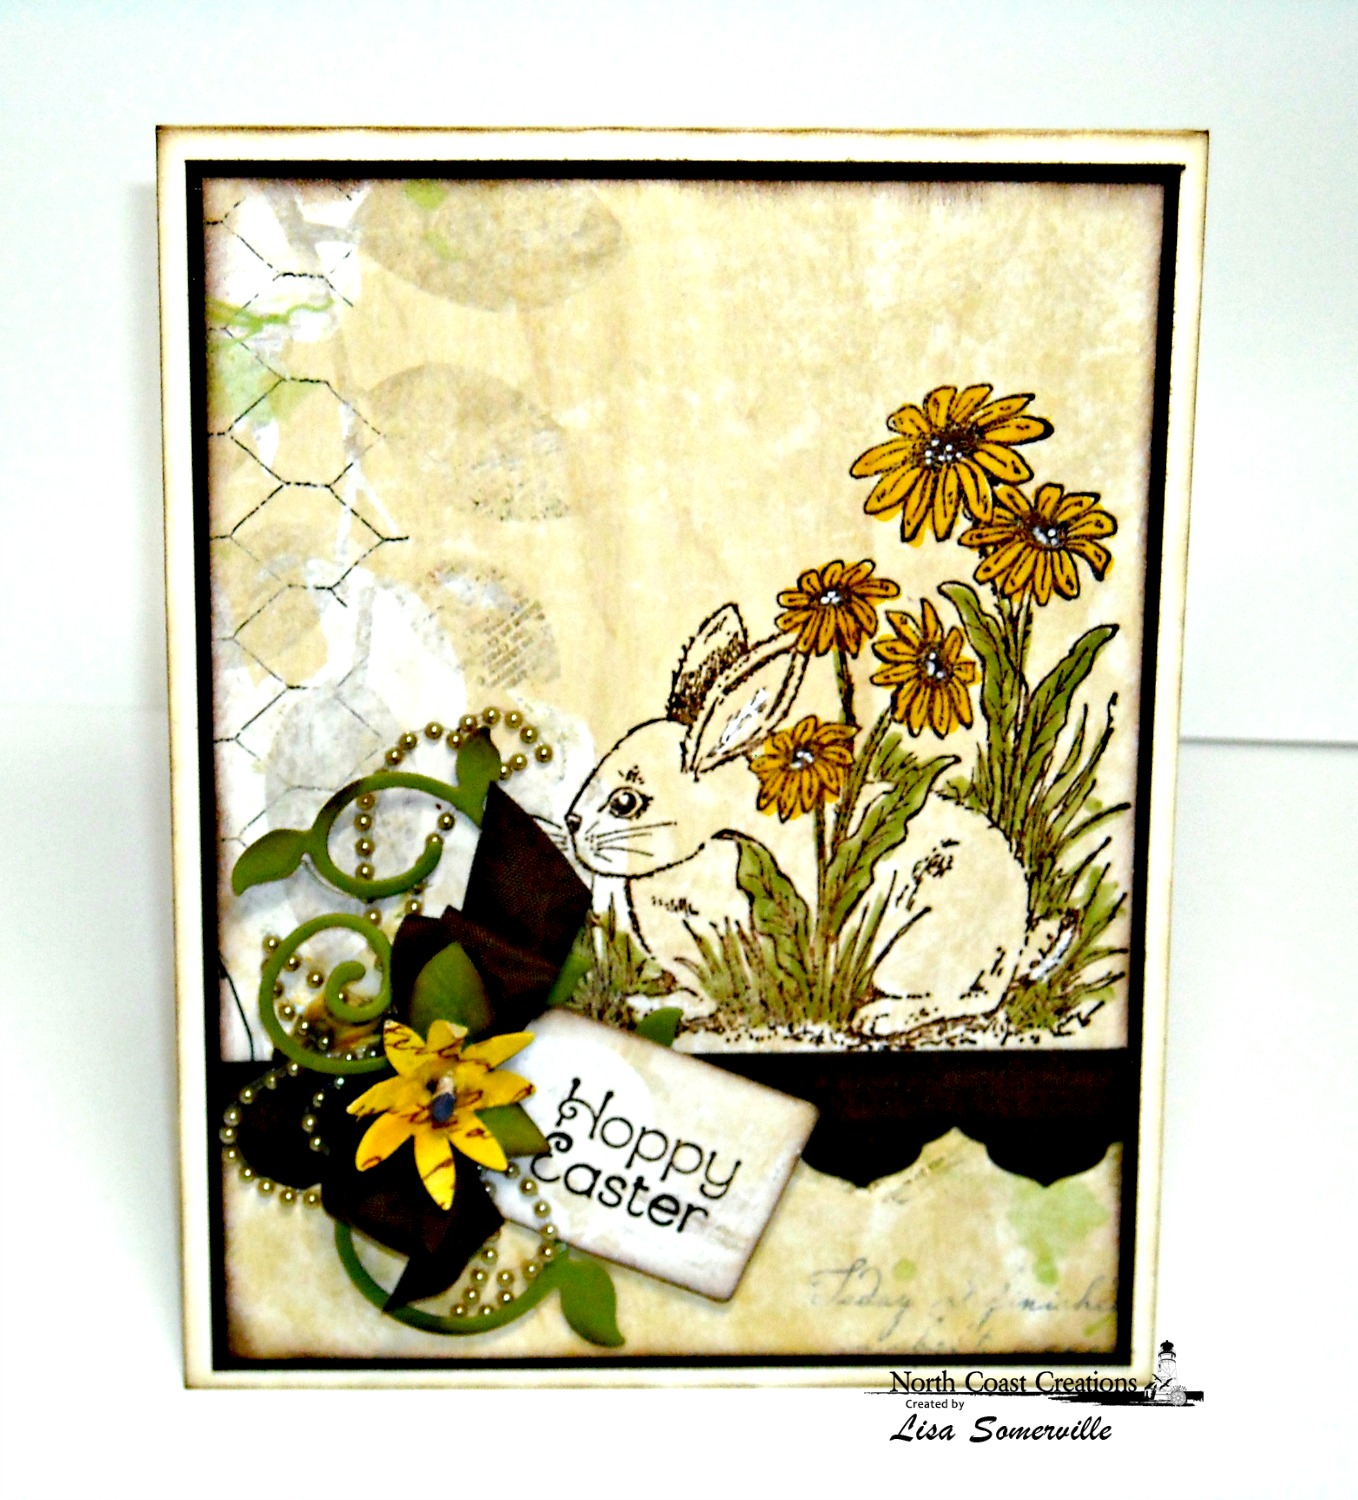 Stamps - North Coast Creations Hoppy Easter, ODBD Custom Custom Recipe Card and Tags Dies, ODBD Custom Antique Labels and Border Dies, , ODBD Custom Fancy Foliage Die